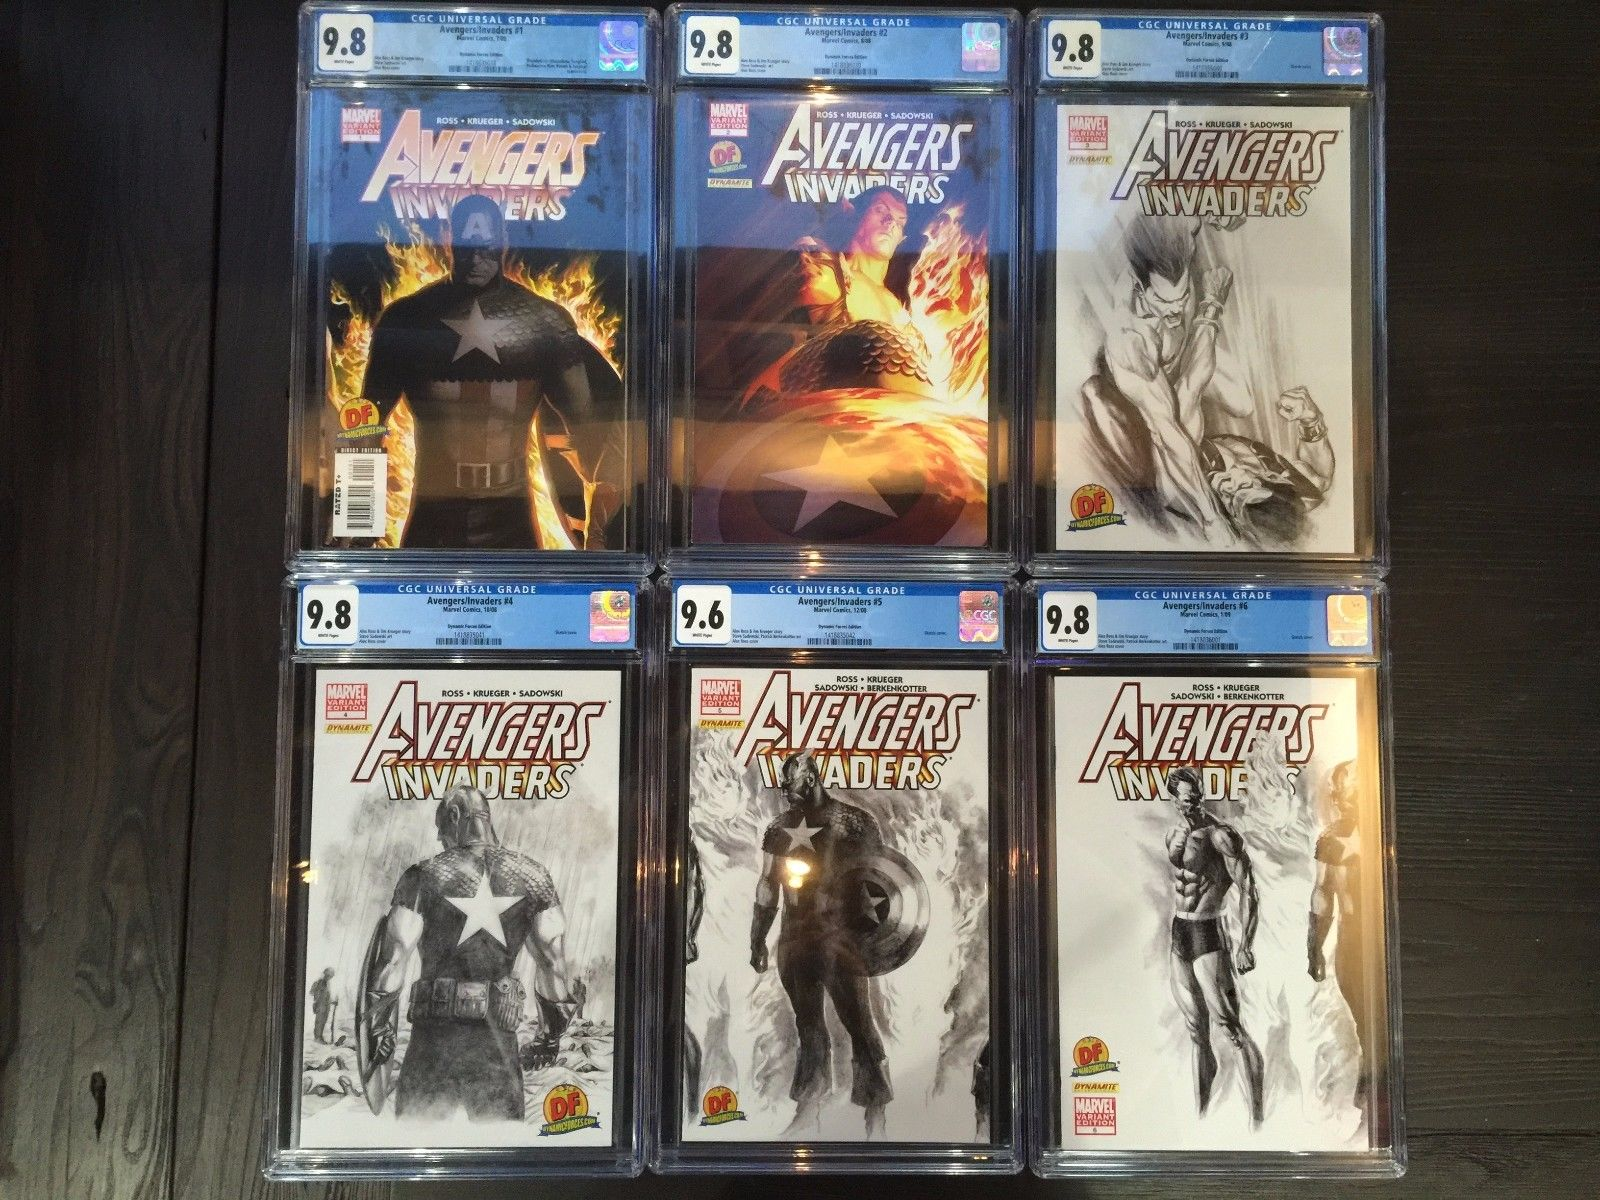 AVENGERS/INVADERS #1 2 3 4 5 6 7 8 9 10 11 12 ALEX ROSS DYNAMIC FORCES CGC SET